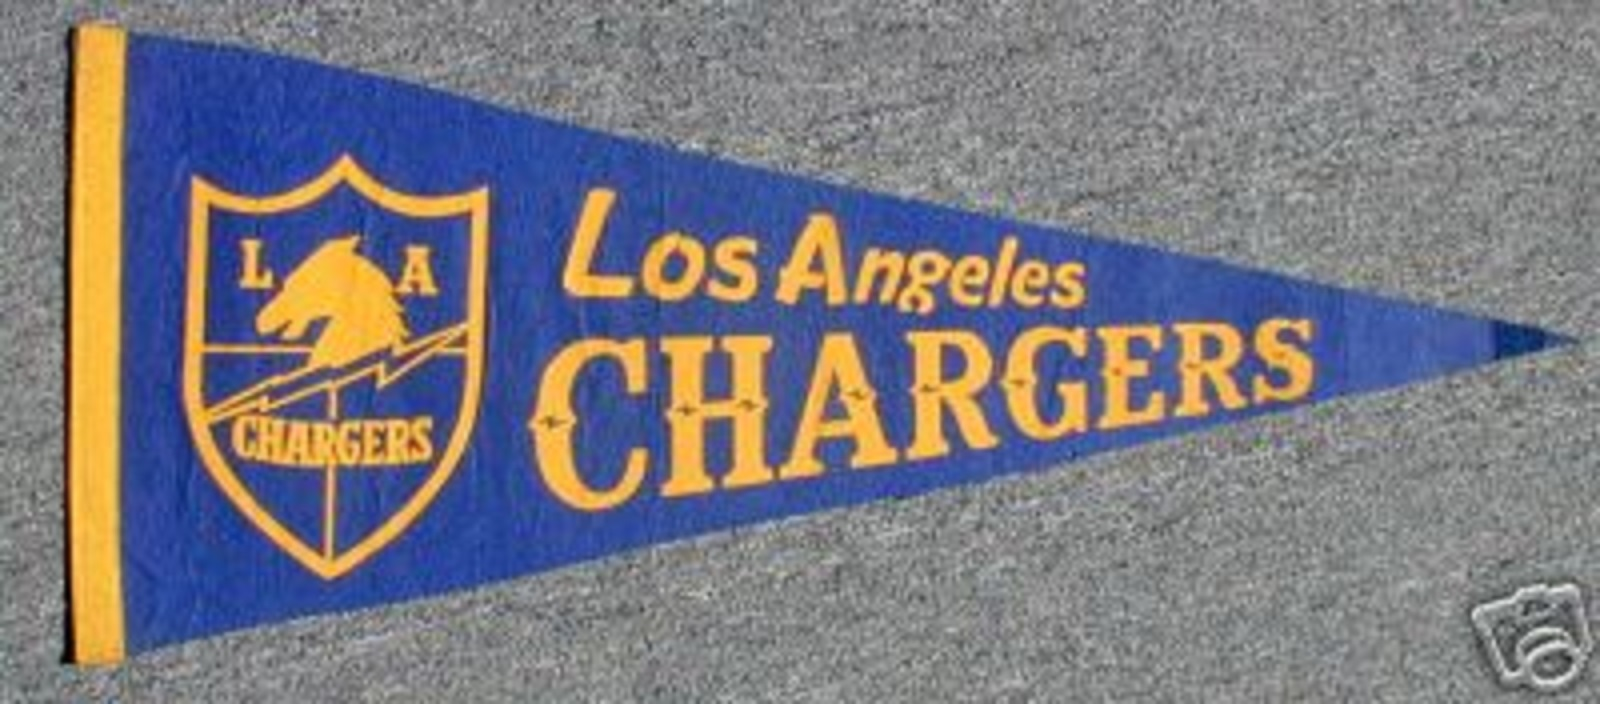 4-4 Los Angeles Chargers